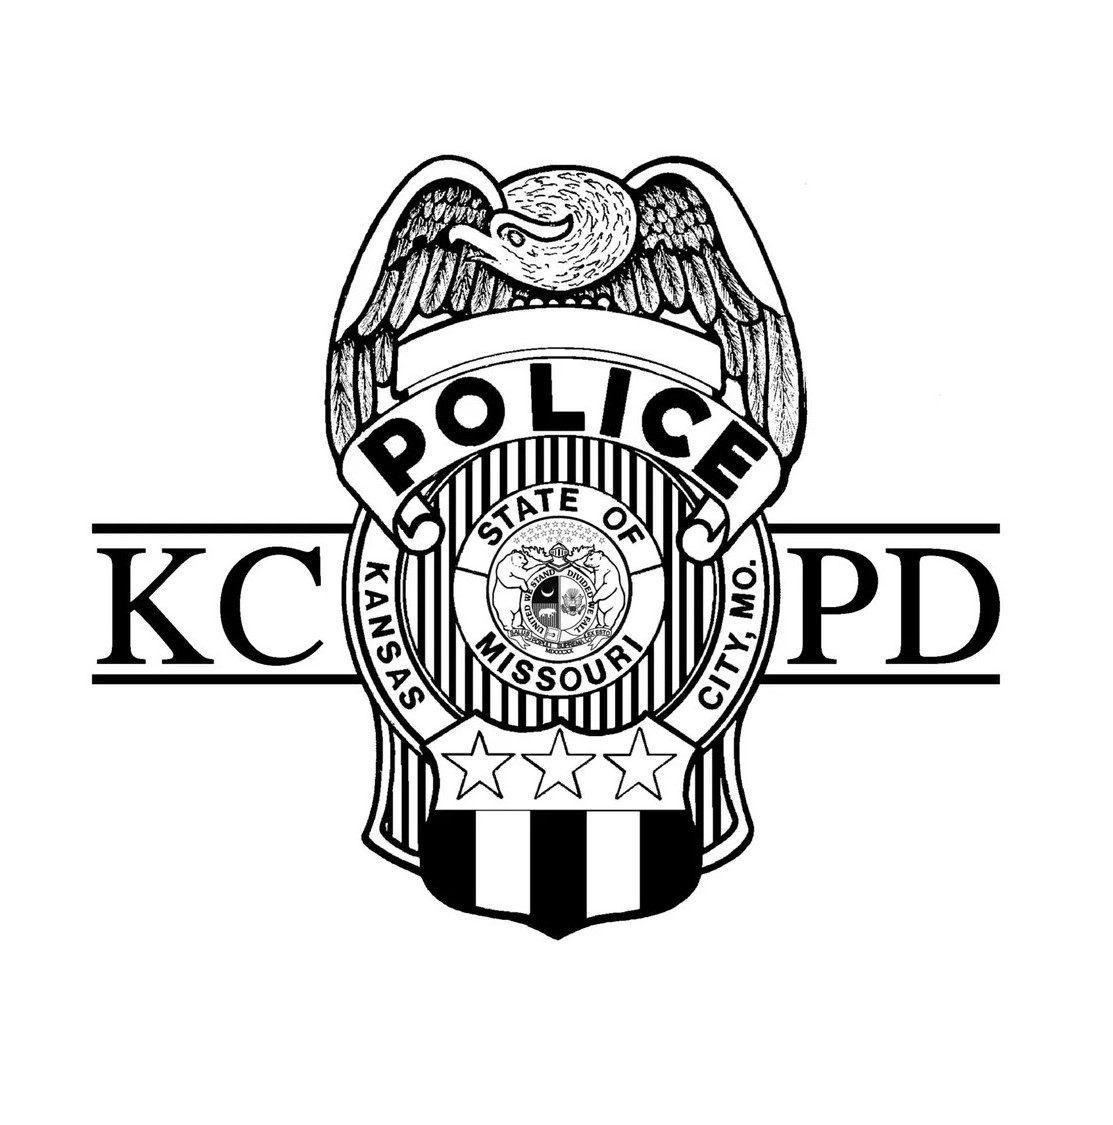 KCPD